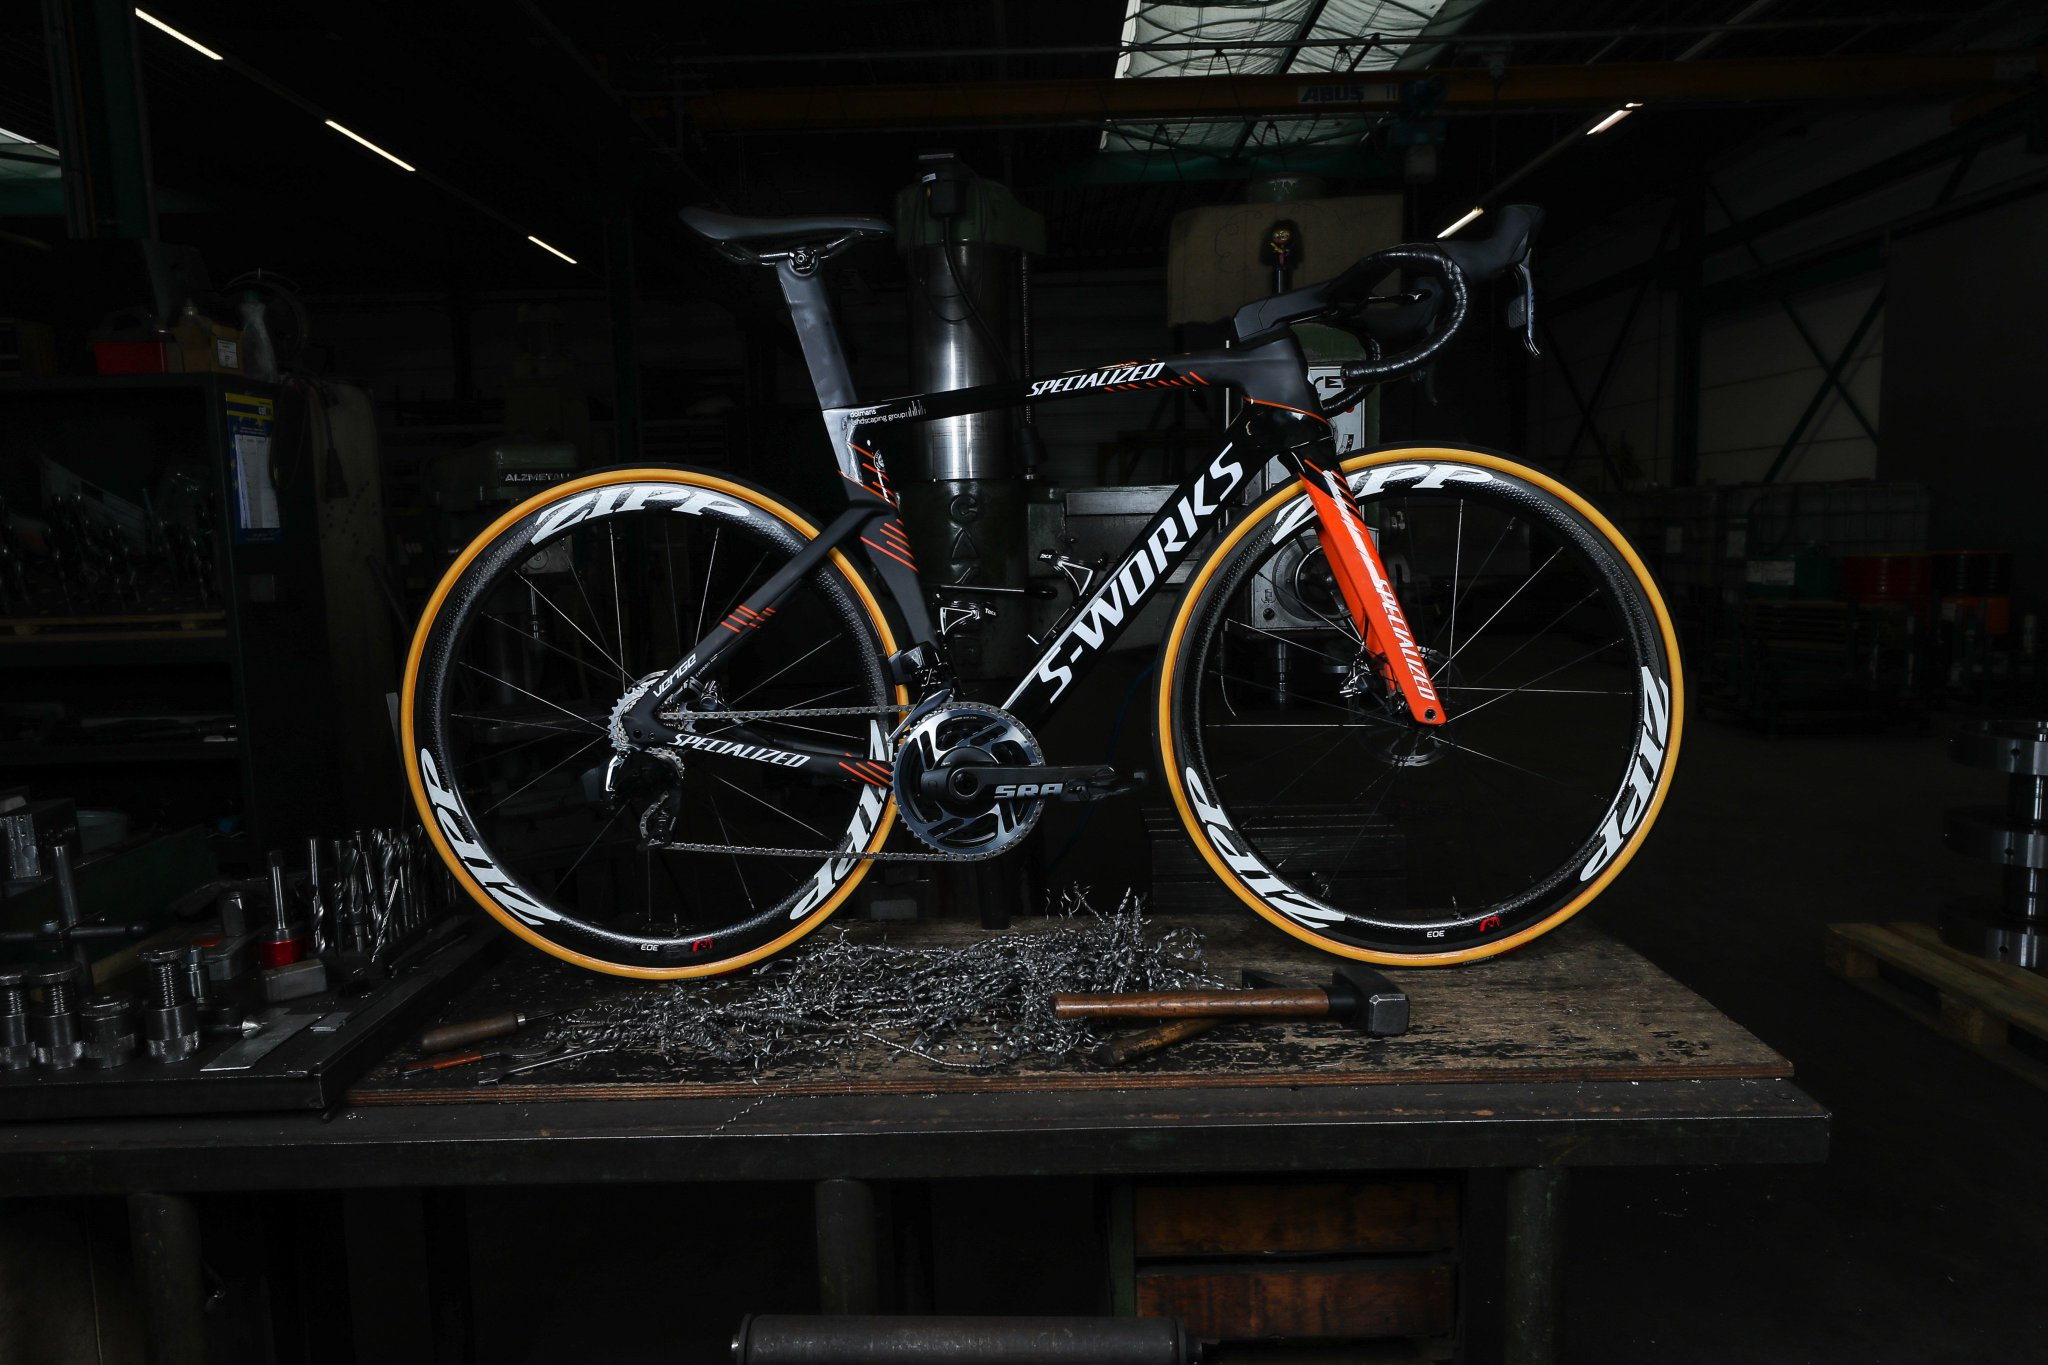 """Team SD Worx on Twitter: """"Introducing the 2019 Specialized Venge of the  @boelsdolmansct Including the new & exciting @SRAMroad eTap AXS group. This  intuitive, high performance group keeps you focussed on what's most  important - your ride ..."""